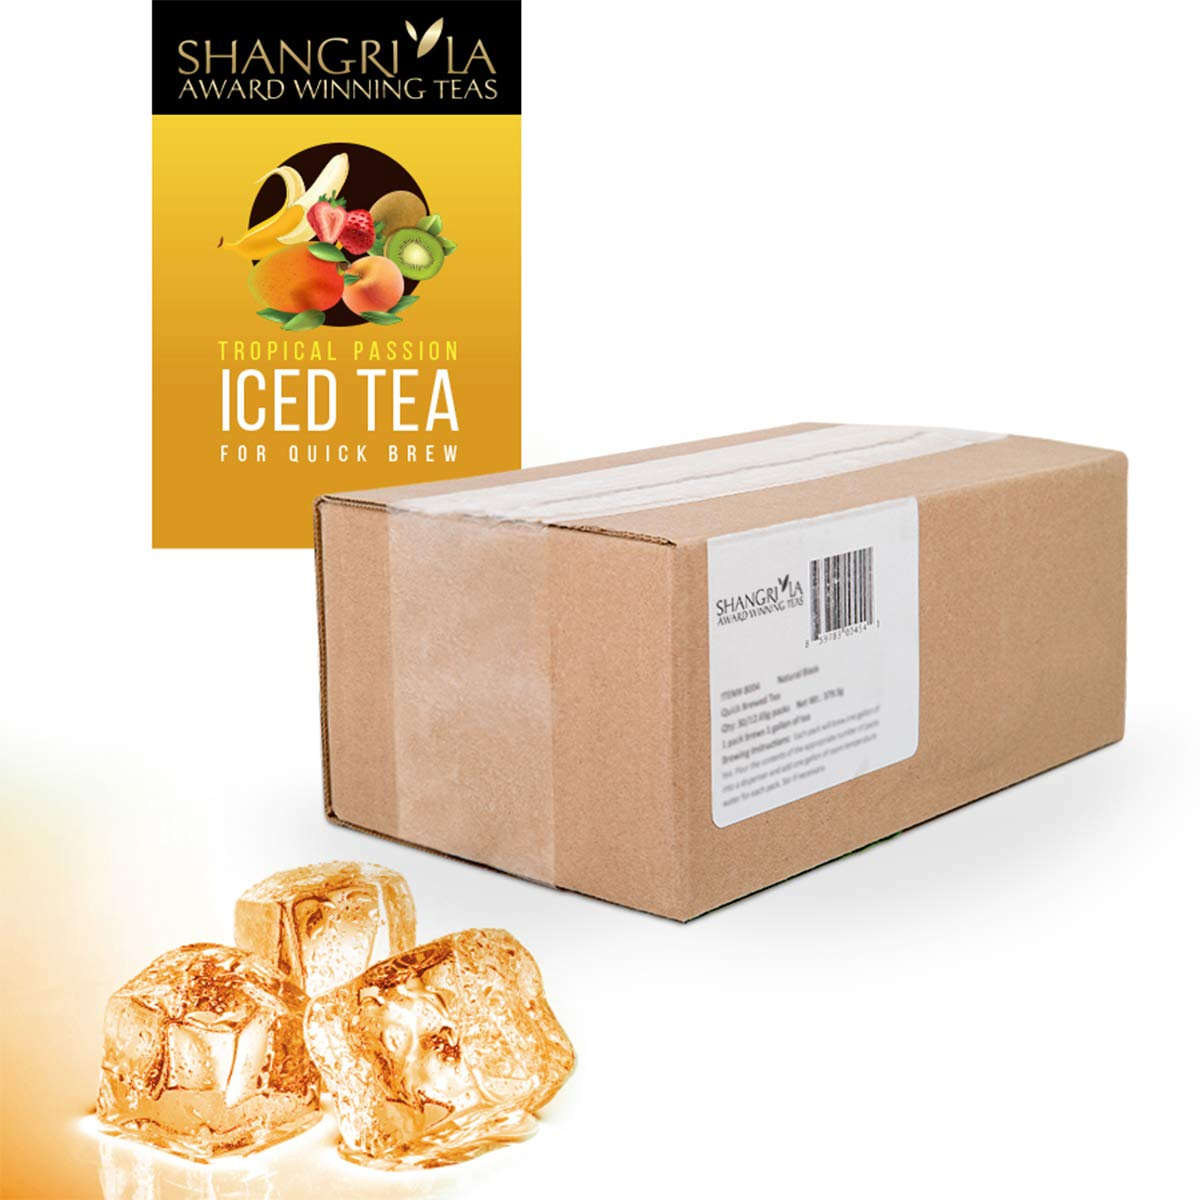 Shangri-La Tea Company Quick Brewed Iced Tea, Tropical Passion Green, Box of 30 Packs, 120 Quarts, 13 Ounce (Pack of 1)